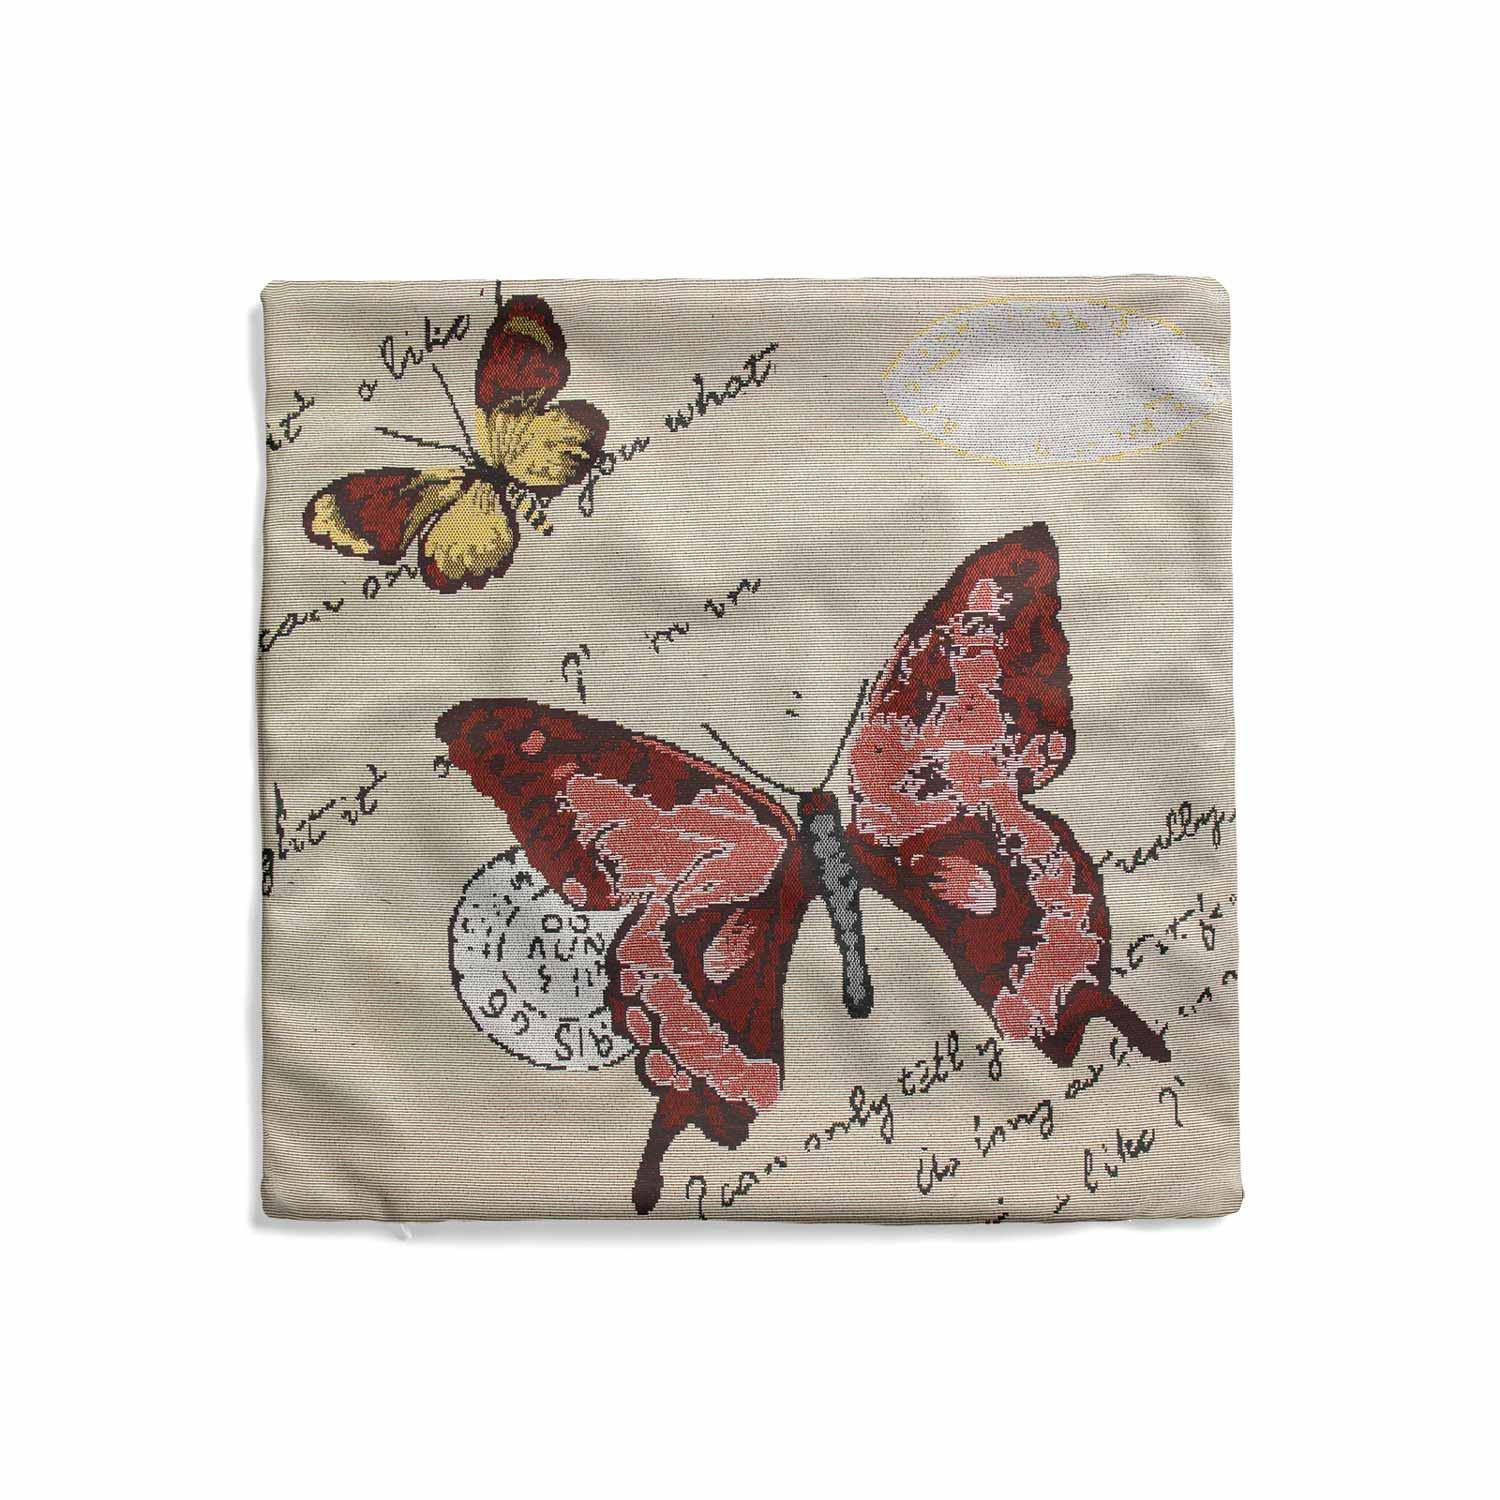 Tapestry-Cushion-Covers-Vintage-Pillow-Cover-Collection-18-034-45cm-Filled-Cushions thumbnail 13